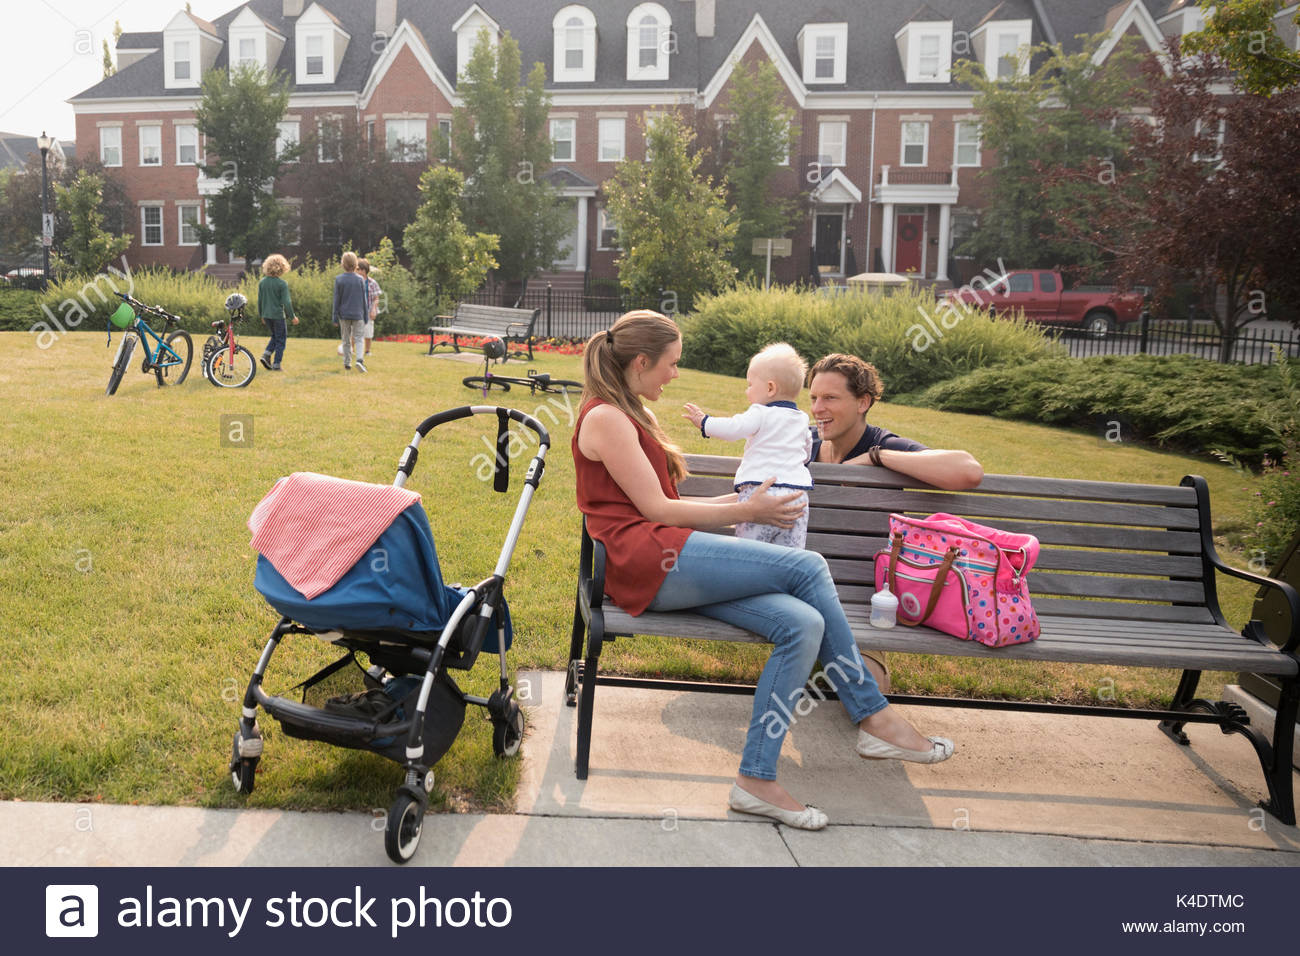 Young family with baby sitting on neighborhood park bench - Stock Image